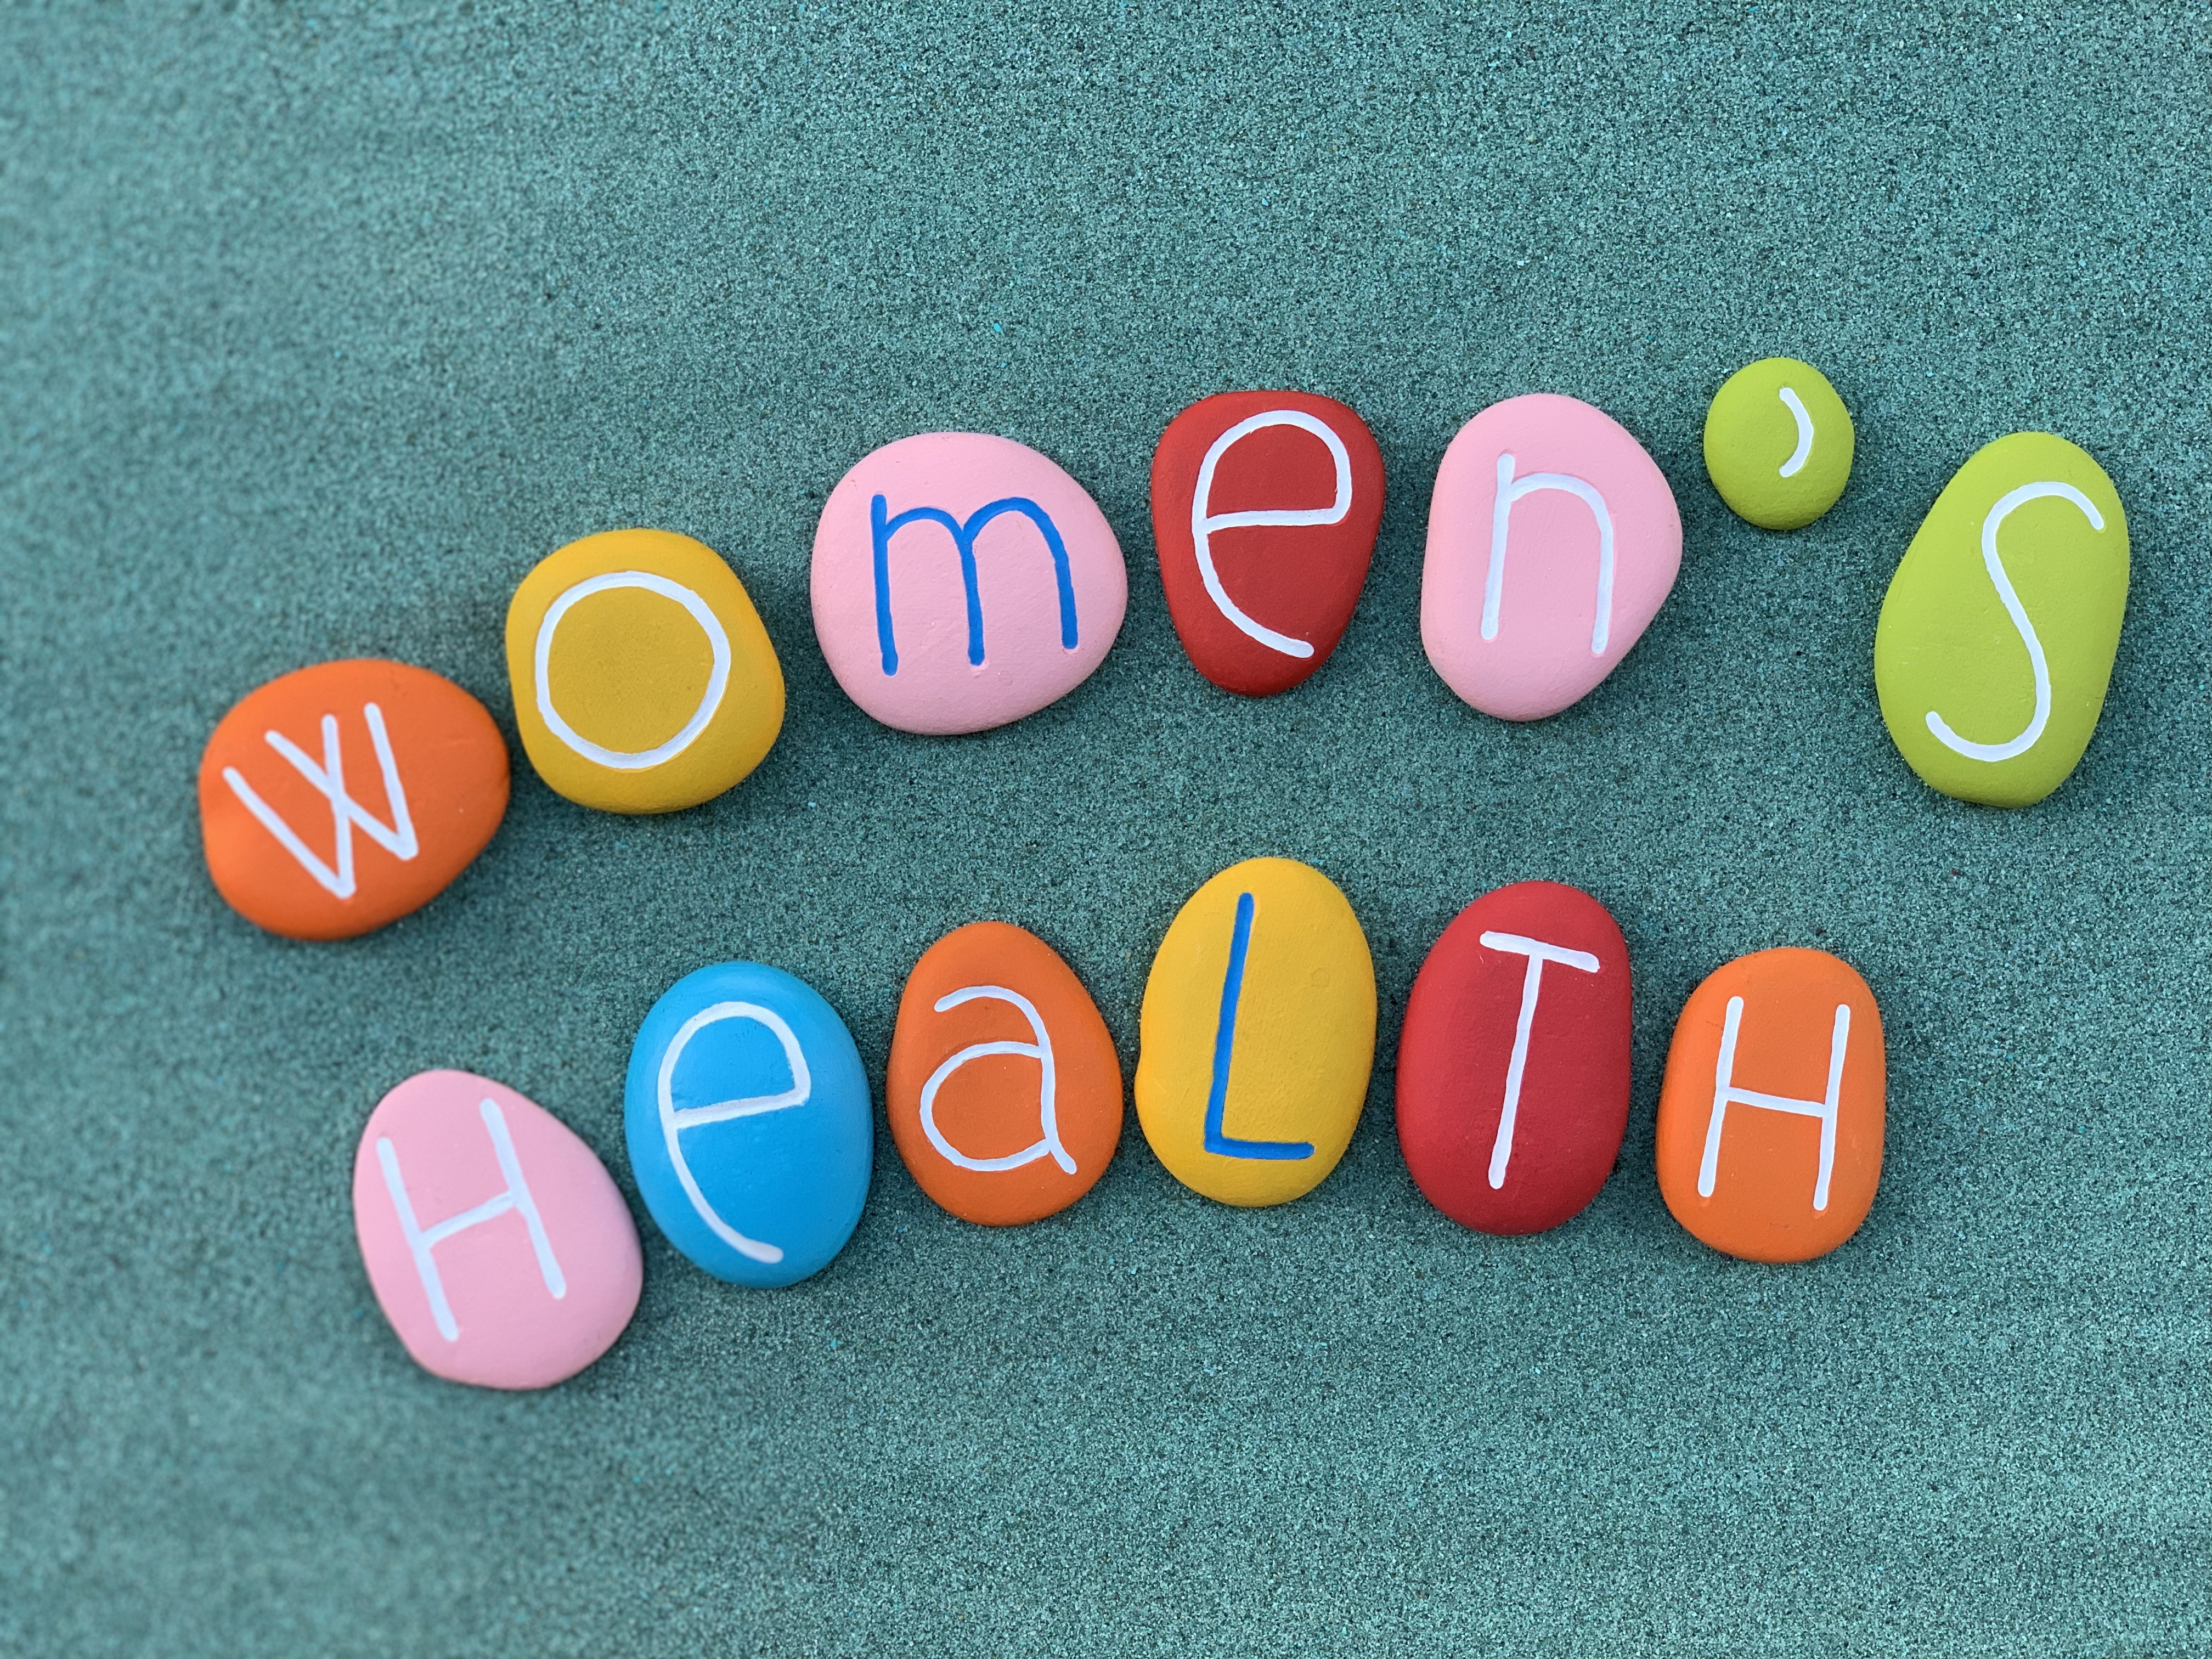 Multi-colored stones spelling out Women's Health